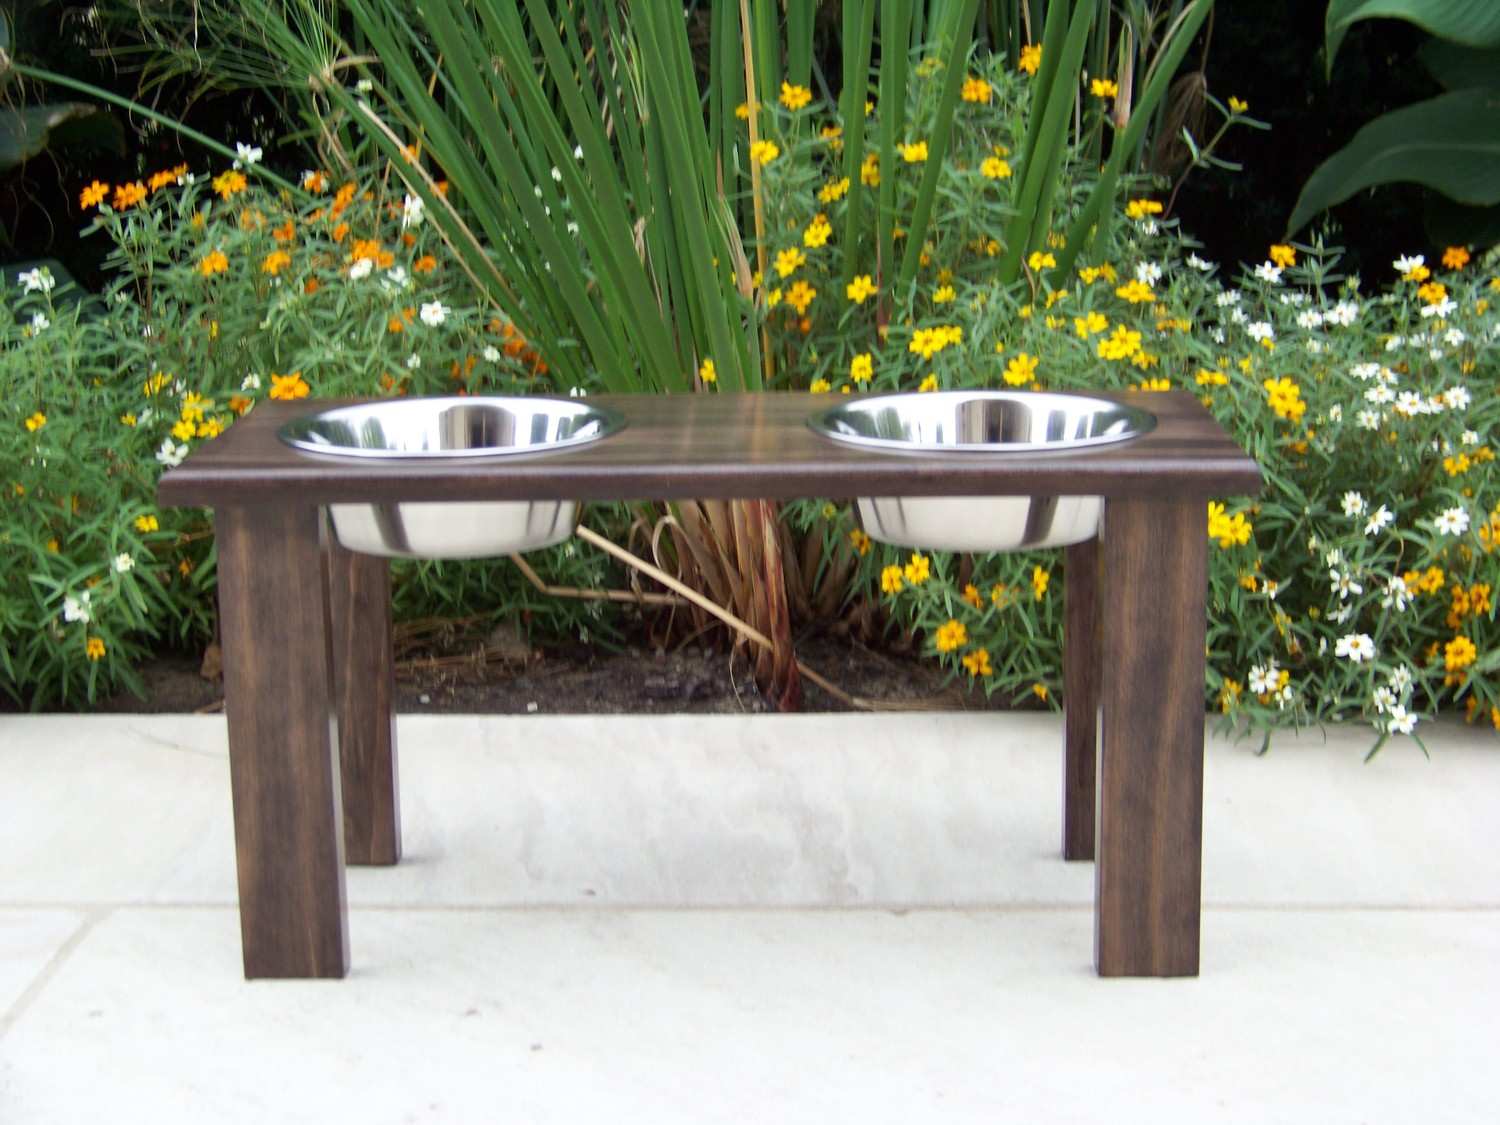 Charming Elevated Dog Bowls for Best Dog Bowl Ideas: Raised Dog Food Bowls | Elevated Dog Bowls | Dog Food Bowl Holder